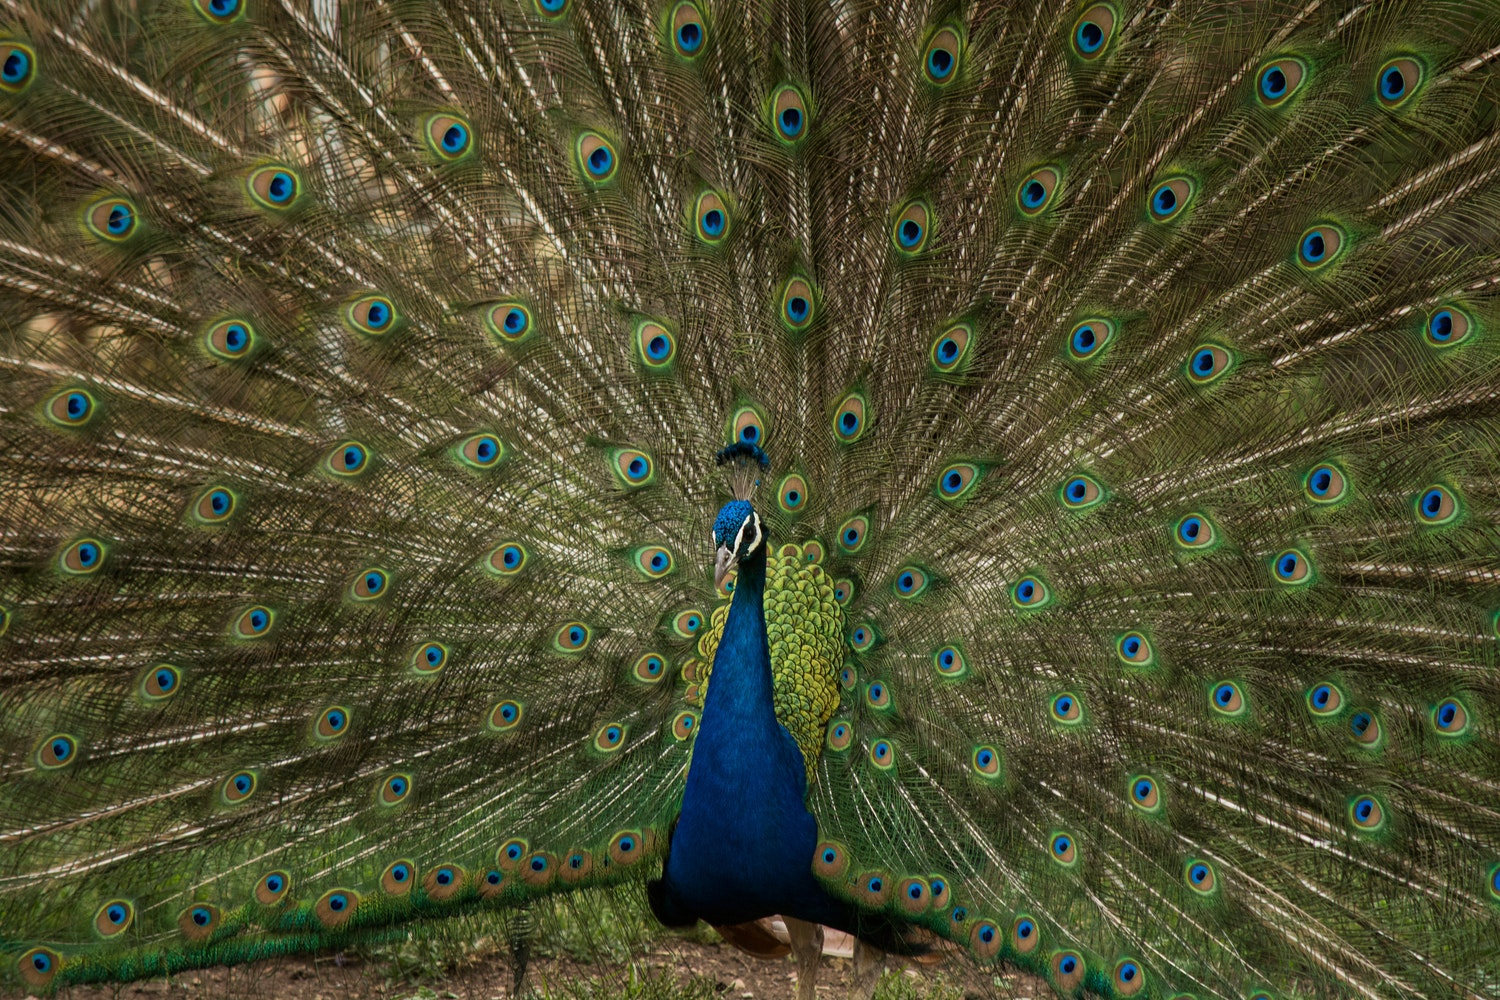 Peacock displaying its train feathers to attract a mate